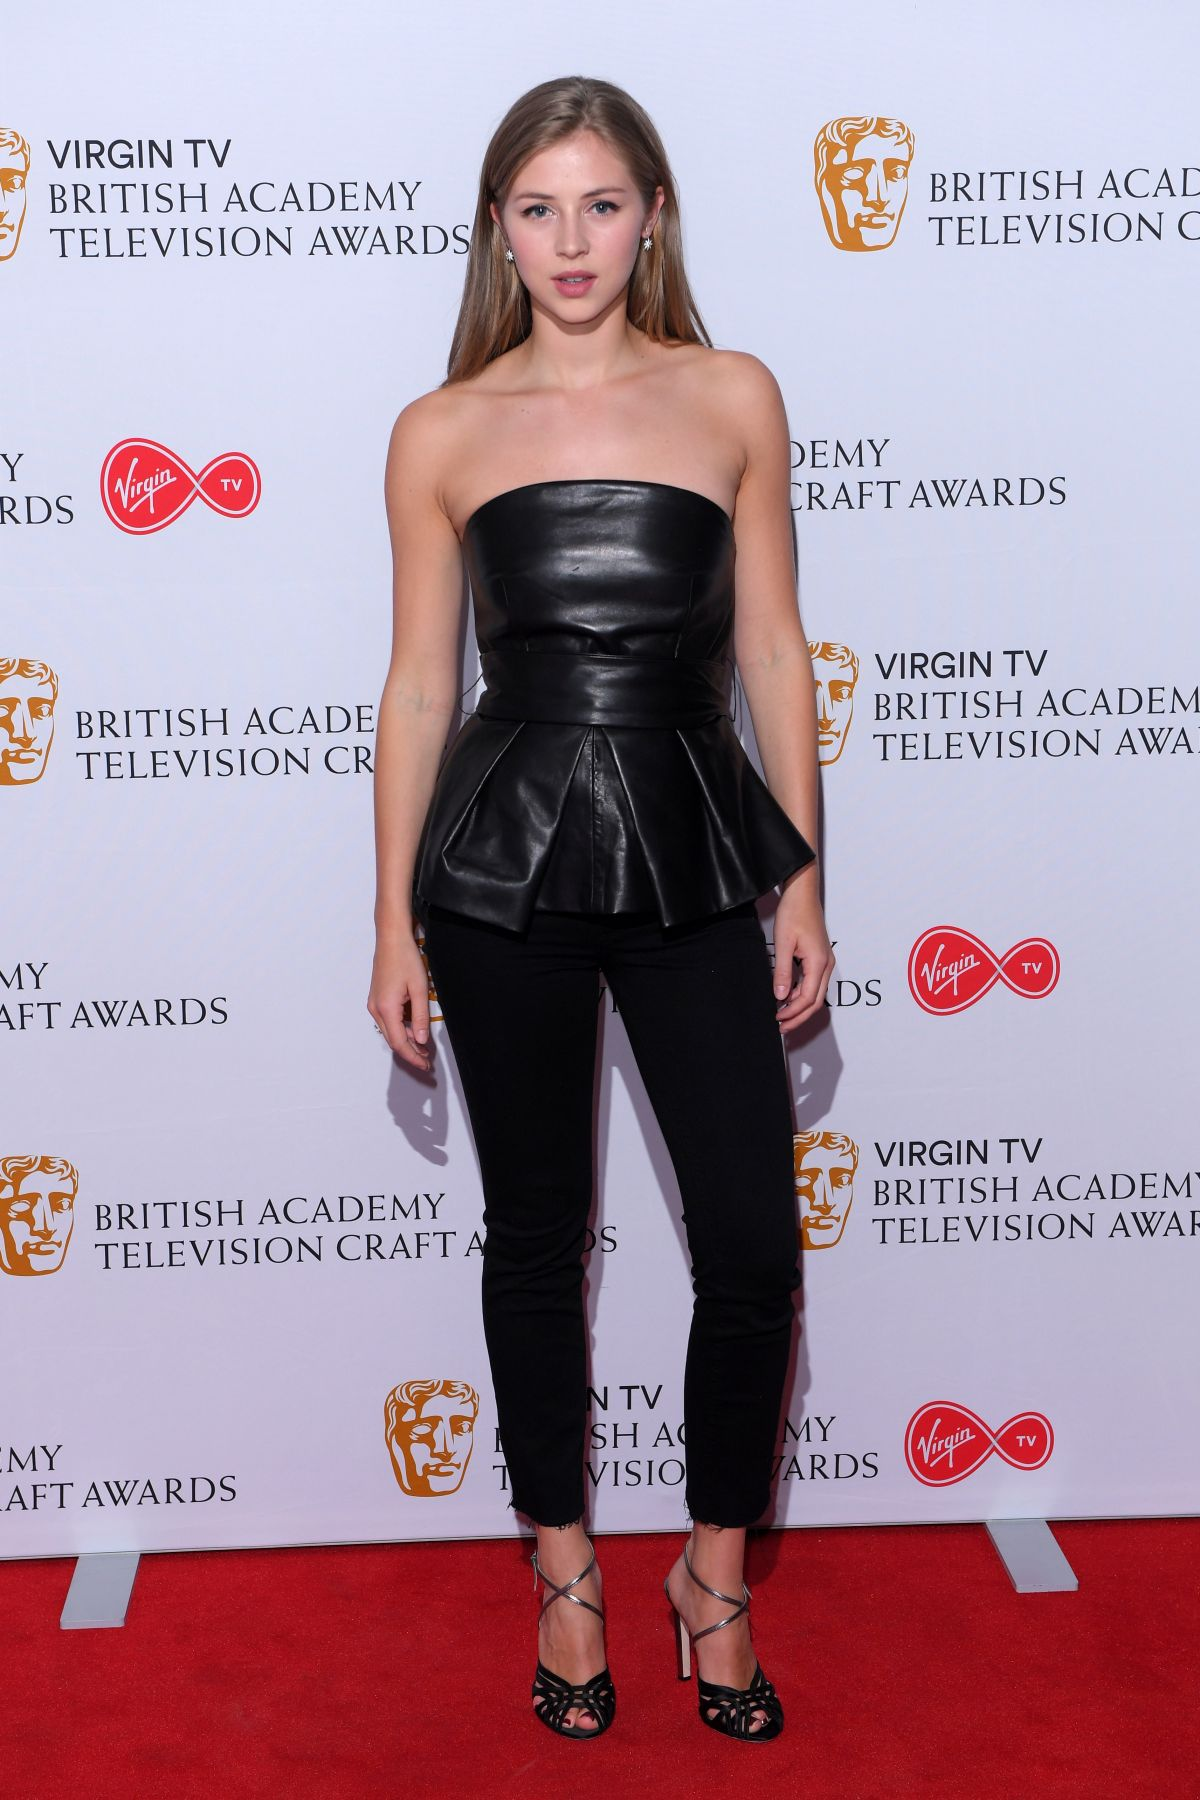 HERMIONE CORFIELD at British Academy Television and Craft Awards Nominees Party in London 04/20/2017   hermione-corfield-at-british-academy-television-and-craft-awards-nominees-party-in-london-04-20-2017_9